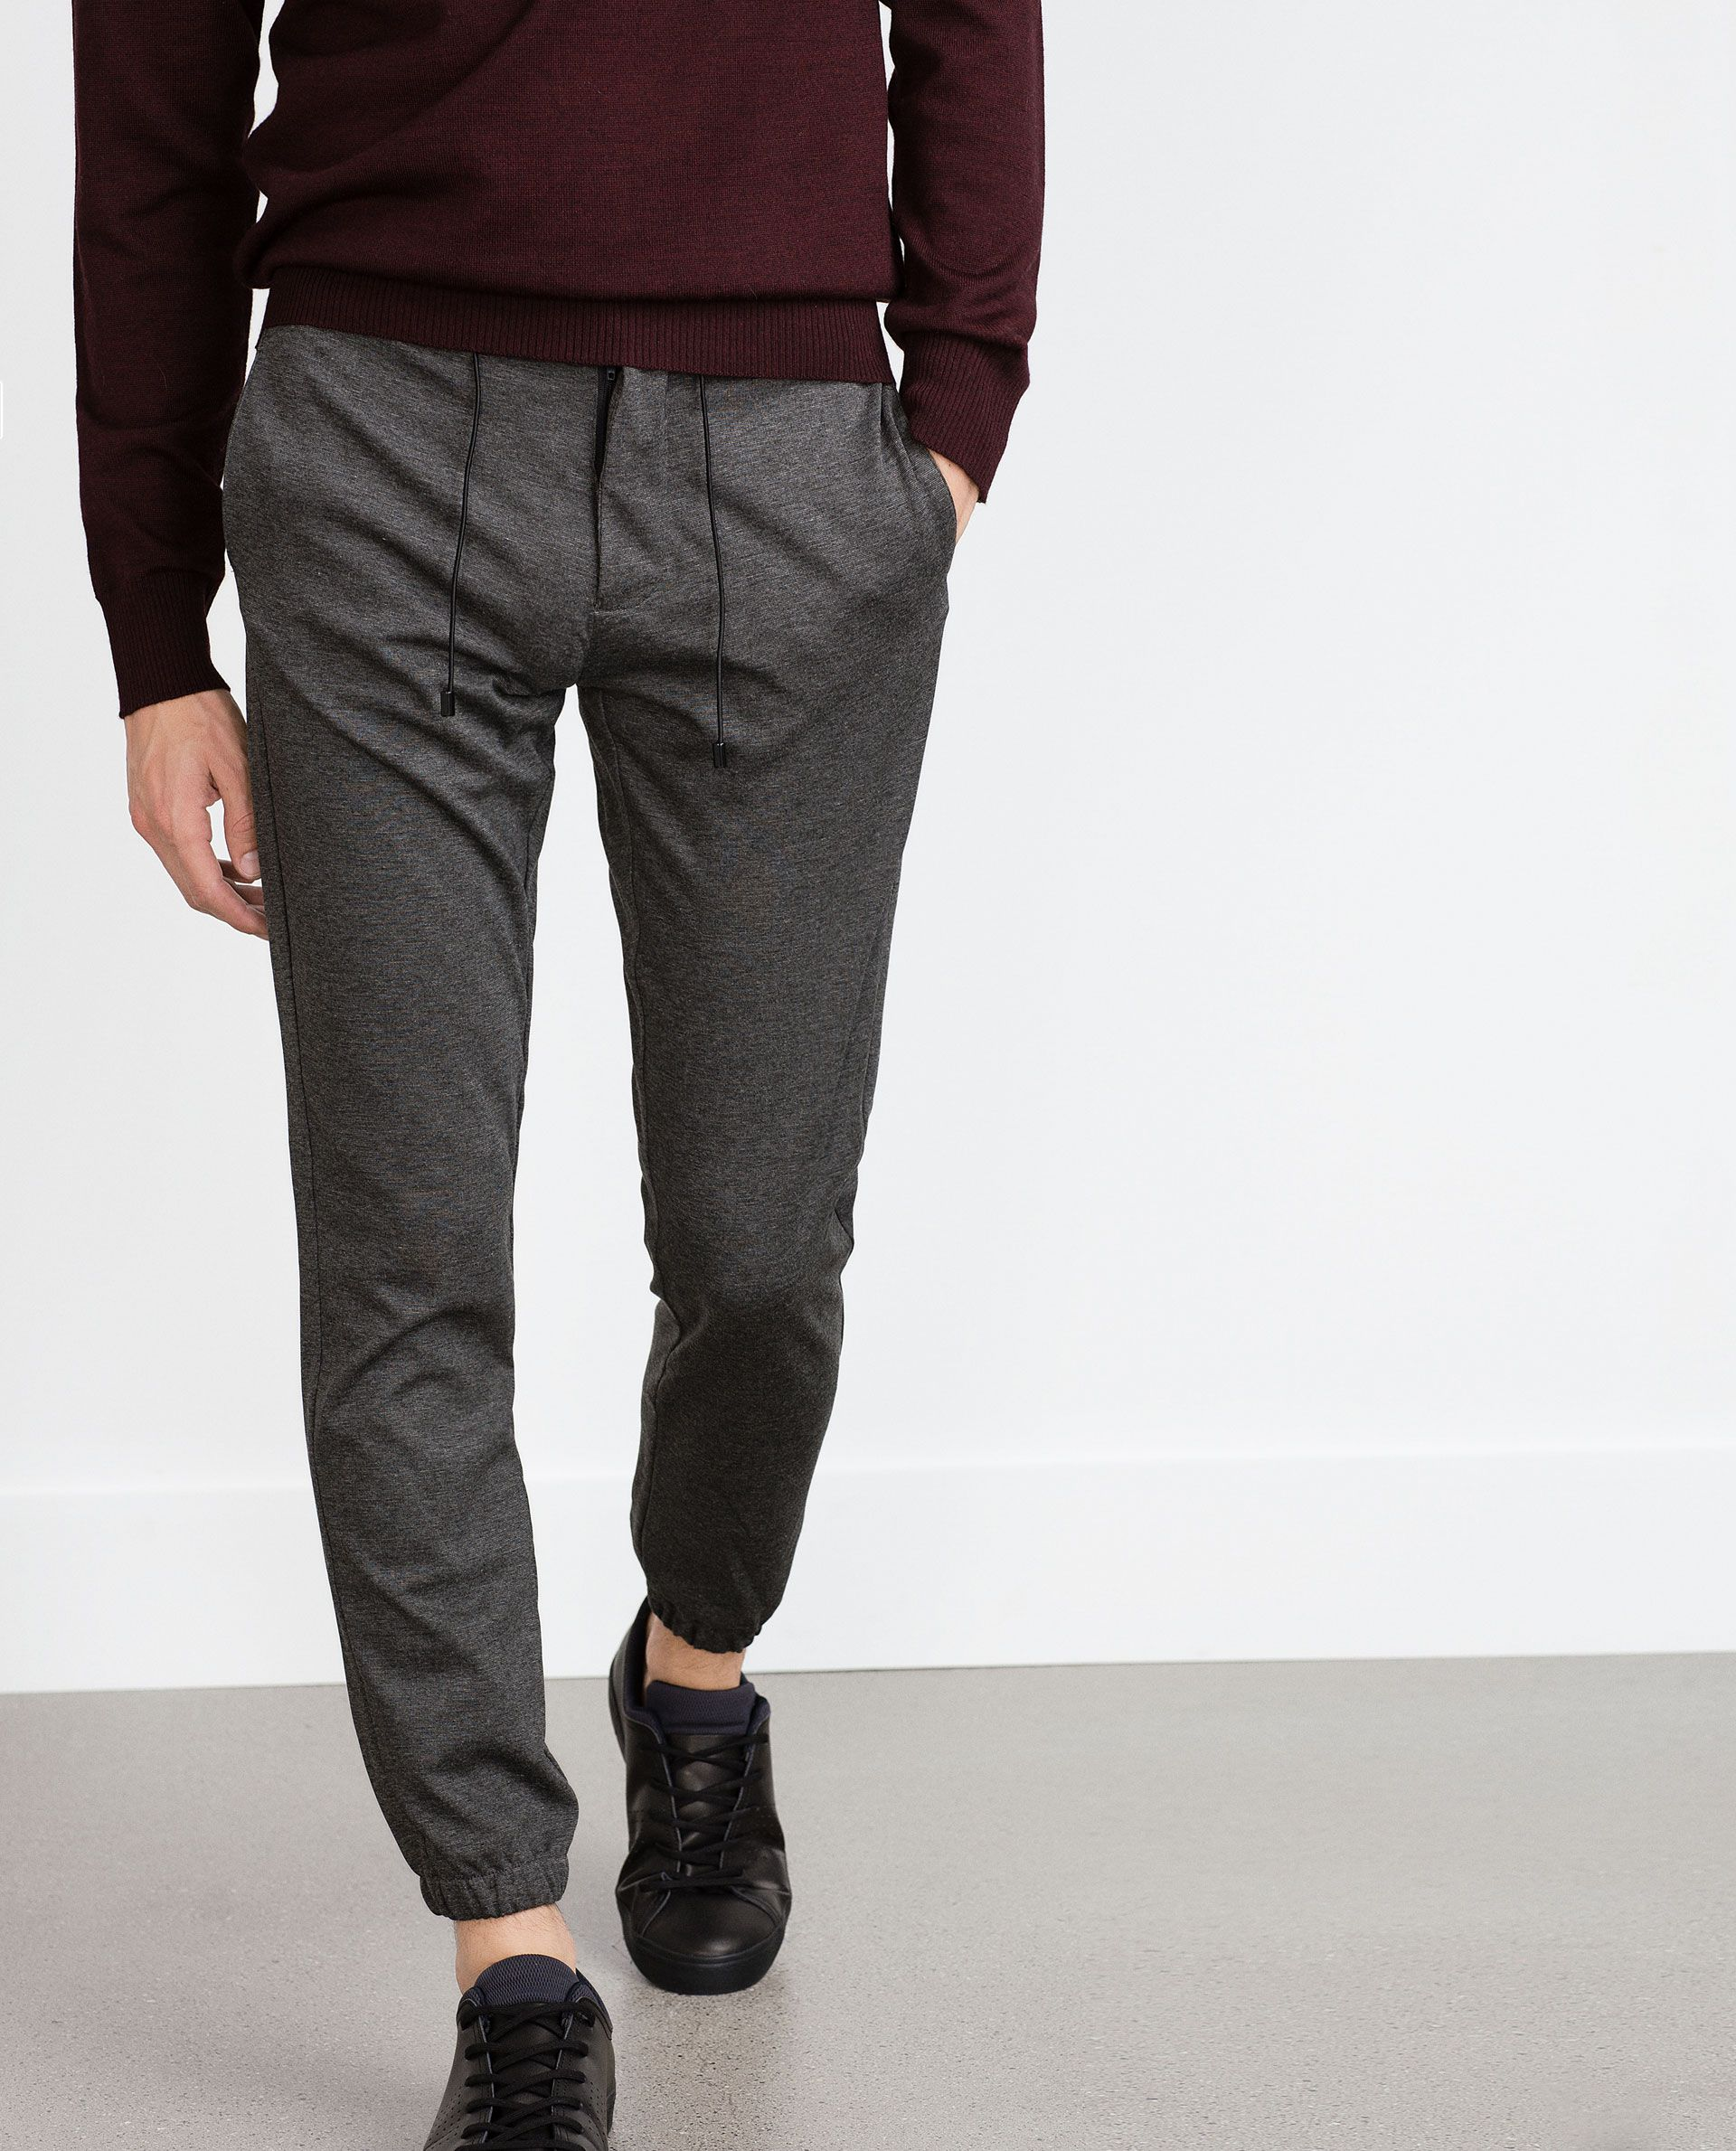 114f8ed8838 KNIT JOGGING TROUSERS - Joggers - Trousers - Man - COLLECTION AW15 | ZARA  United Kingdom